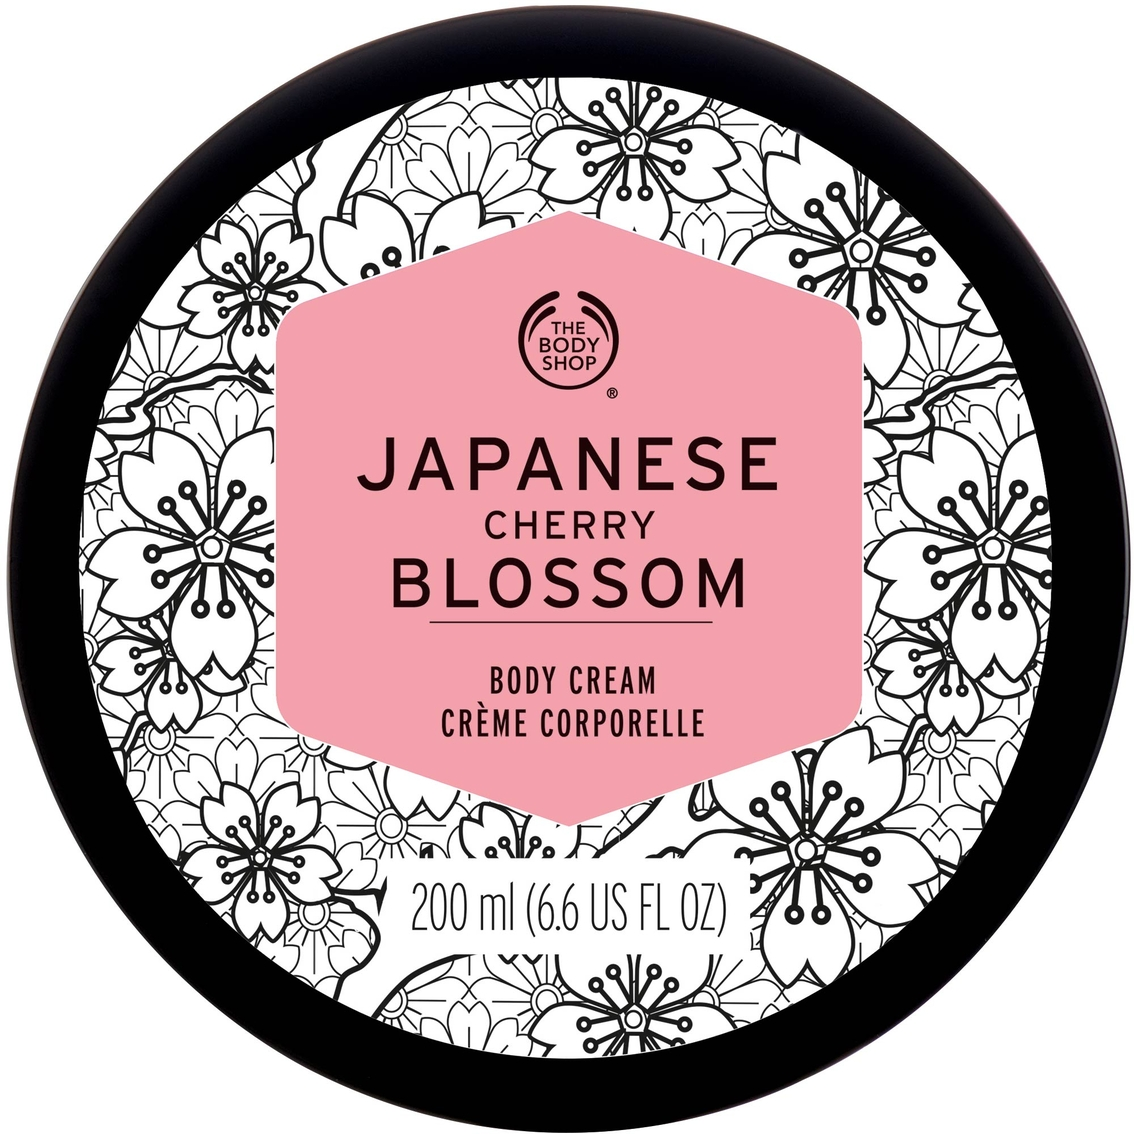 1134x1134 The Body Shop Japanese Cherry Blossom Body Cream Bath Amp Body